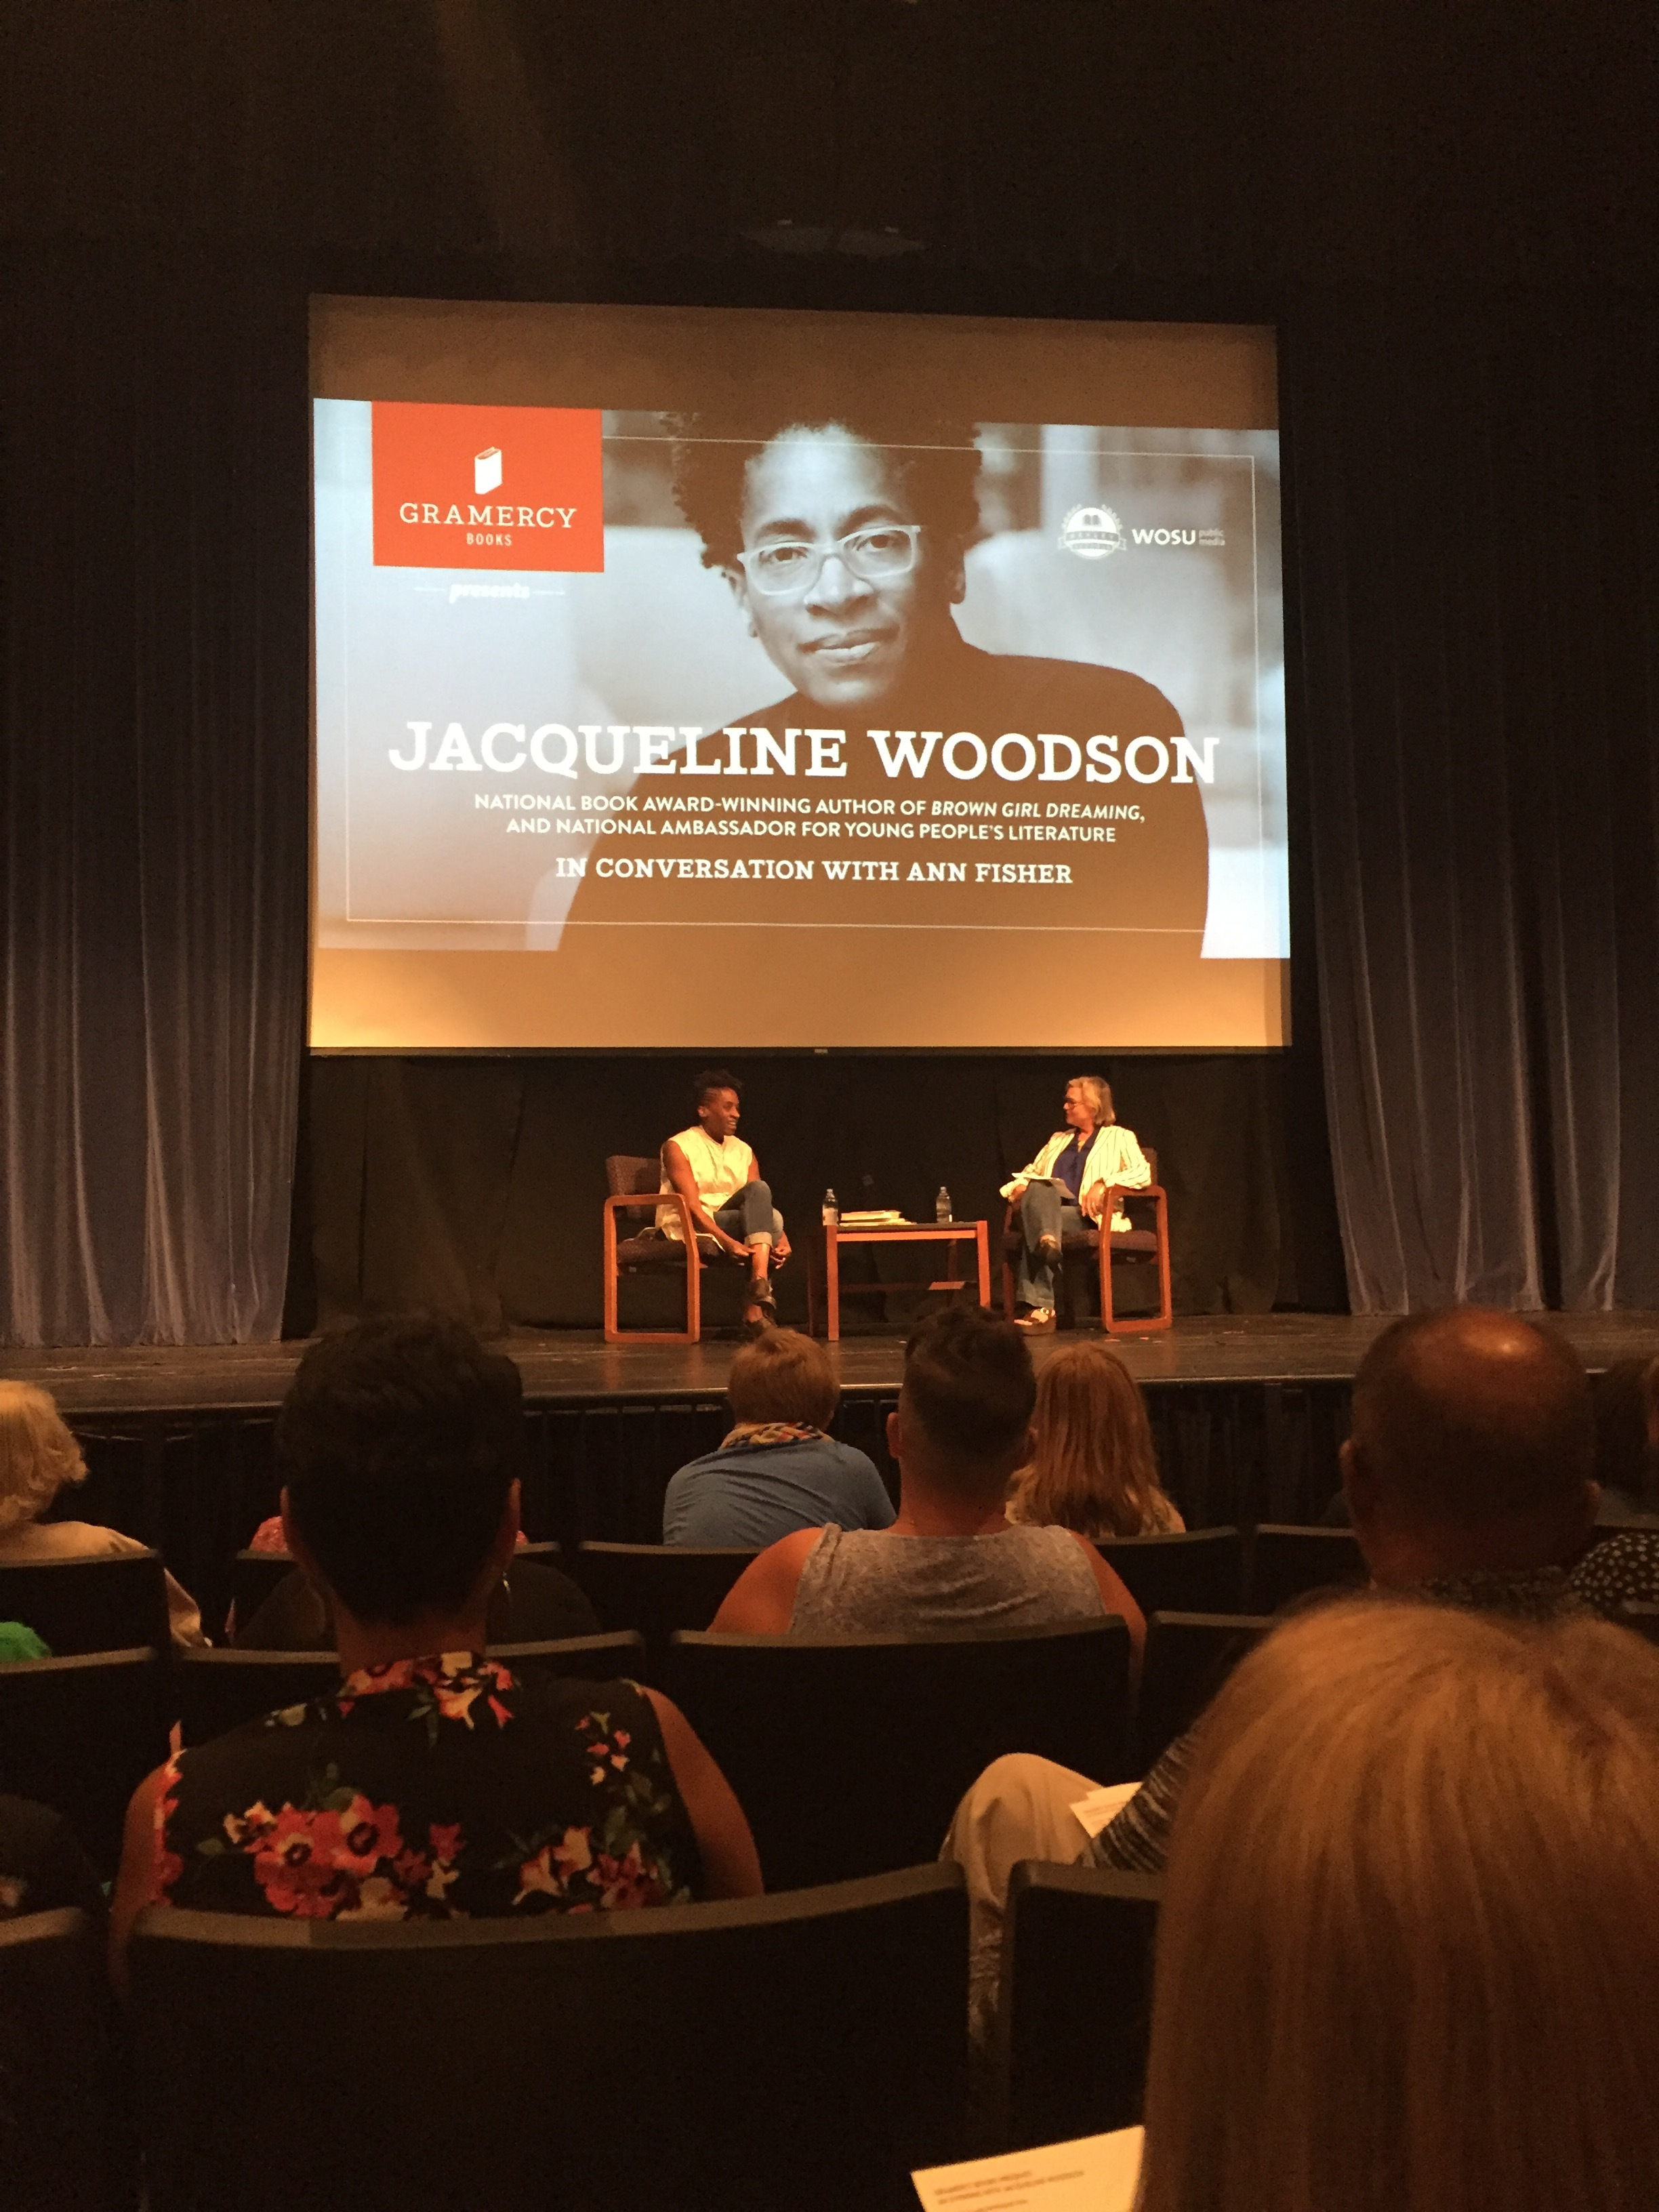 [image description: Photo of the stage Jacqueline Woodson spoke on. I was seated several rows back, so the rows in front of me and the people sitting in them are visible at the bottom of the picture. Onstage, Jacqueline Woodson (a black woman)and the person interviewing her (a white woman; more on her in the next paragraph) are sitting with their chairs angled slightly toward each other but where the audience can still see their faces. Above their heads are royal blue curtains and a big dangling screen with Jacqueline's author photo and copy advertising the event.]